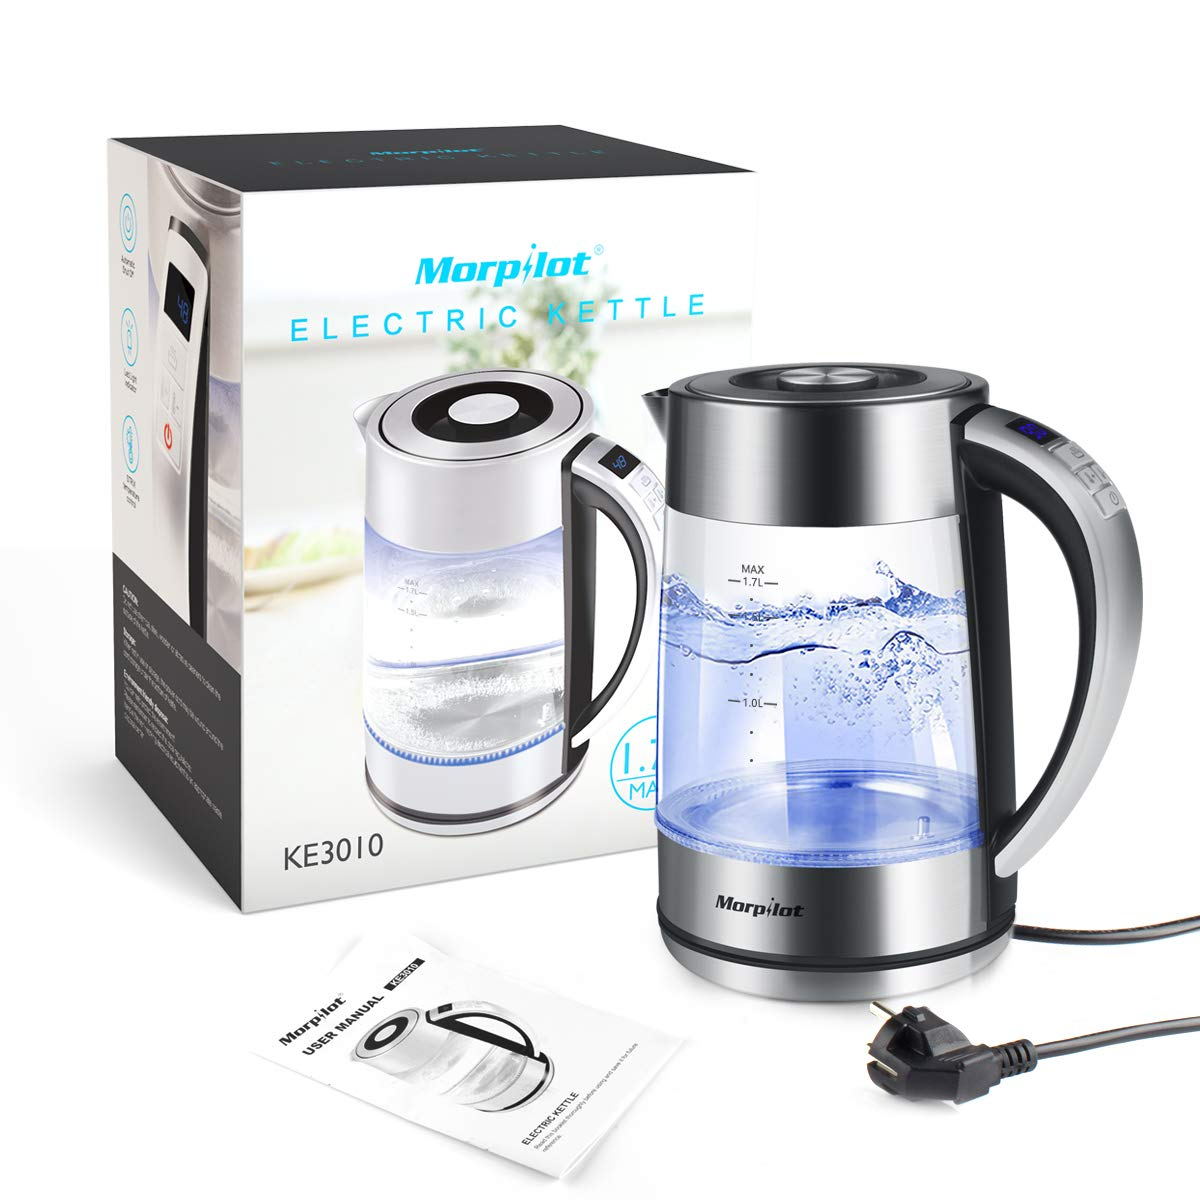 Electric Glass Kettle Cordless,1.7 L Morpilot Tea Kettle with Blue Illumination LED Light,Strix Control Double Layer Fast Boil Kettles with Auto Shut Off & Overheating Protection, BPA Free